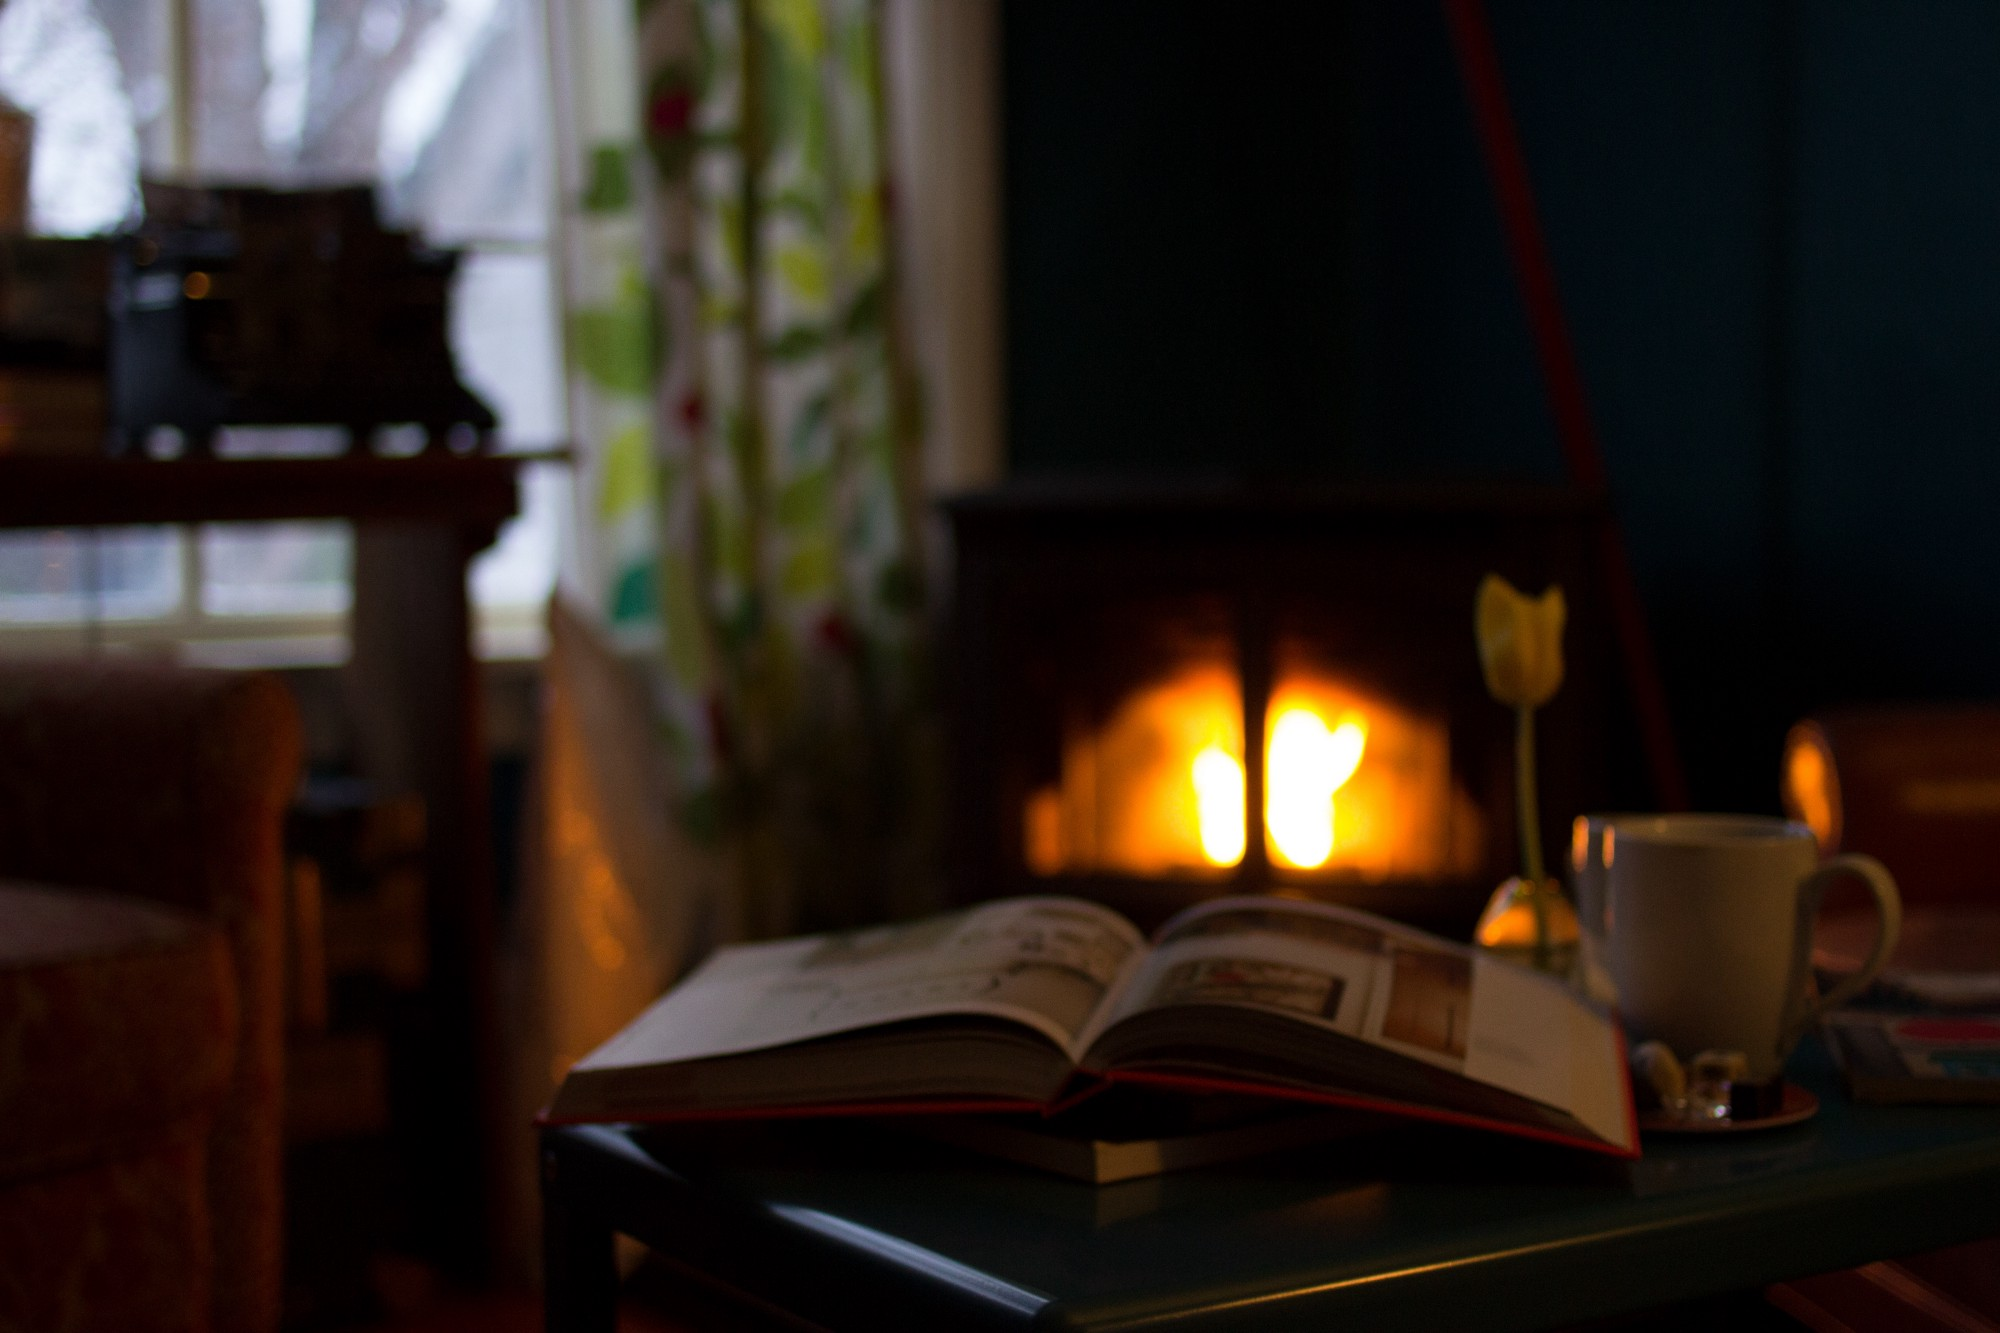 How to return the warmth and love in the family hearth